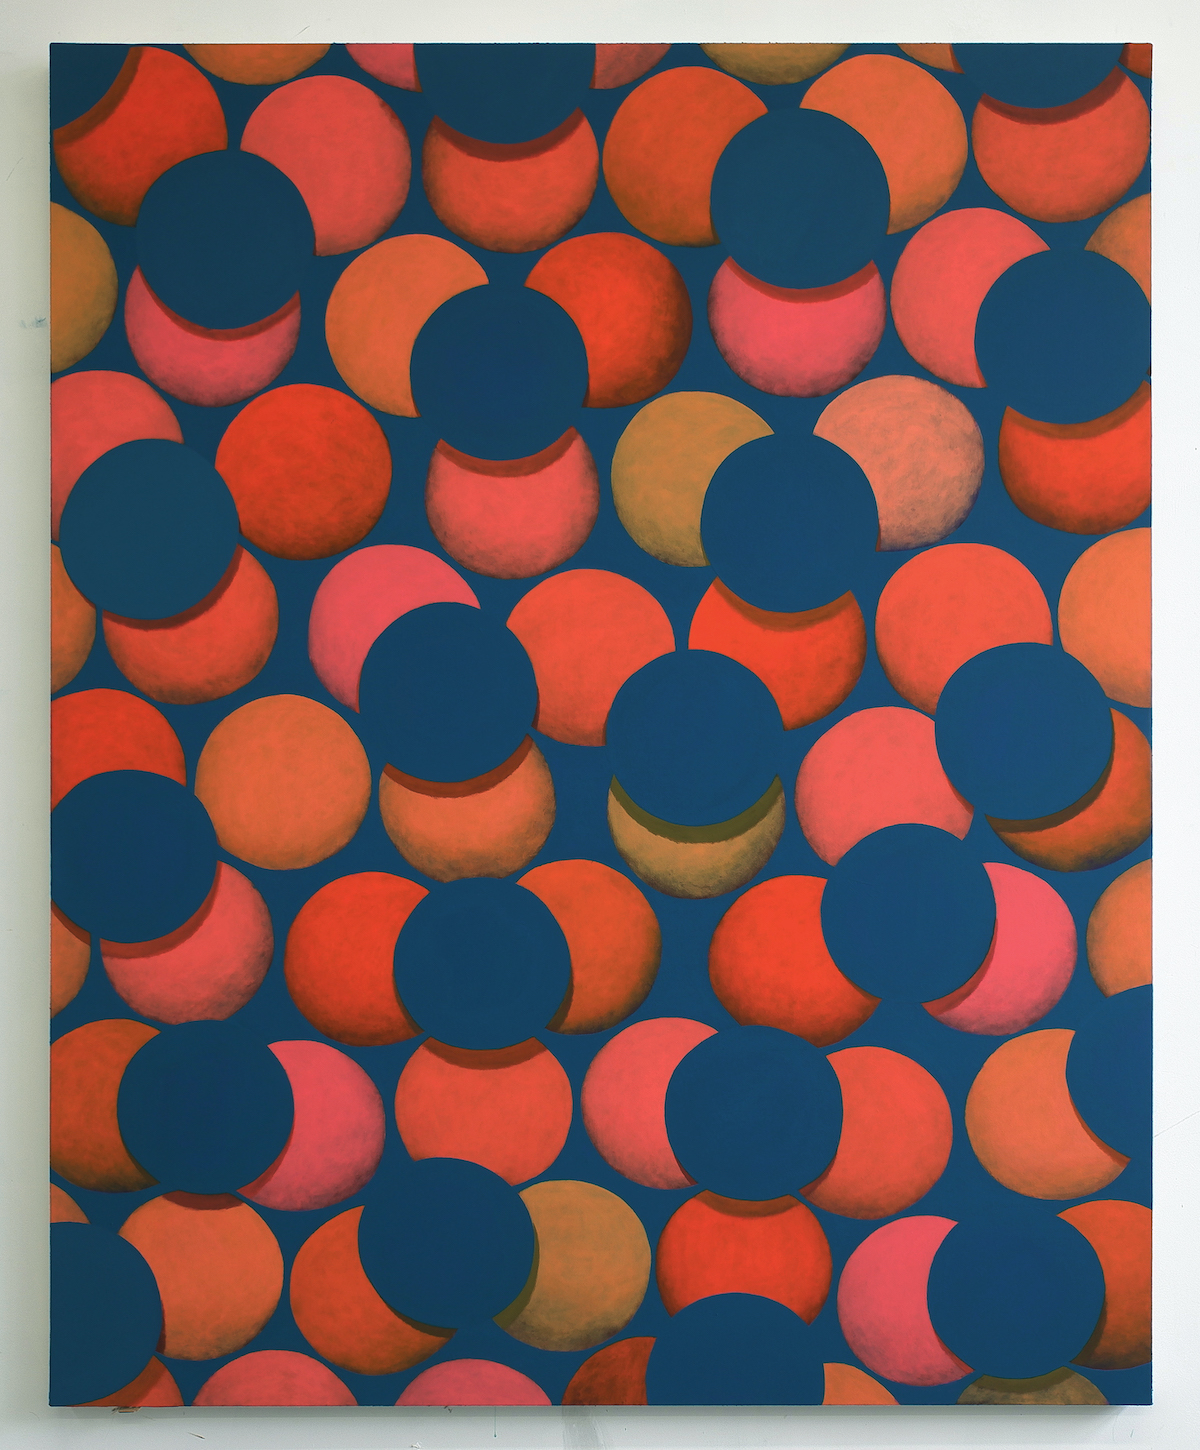 Corydon Cowansage, Dark Turquoise, Orange, Purple, acrylic and vinyl paint on canvas, 60 x 48 inches